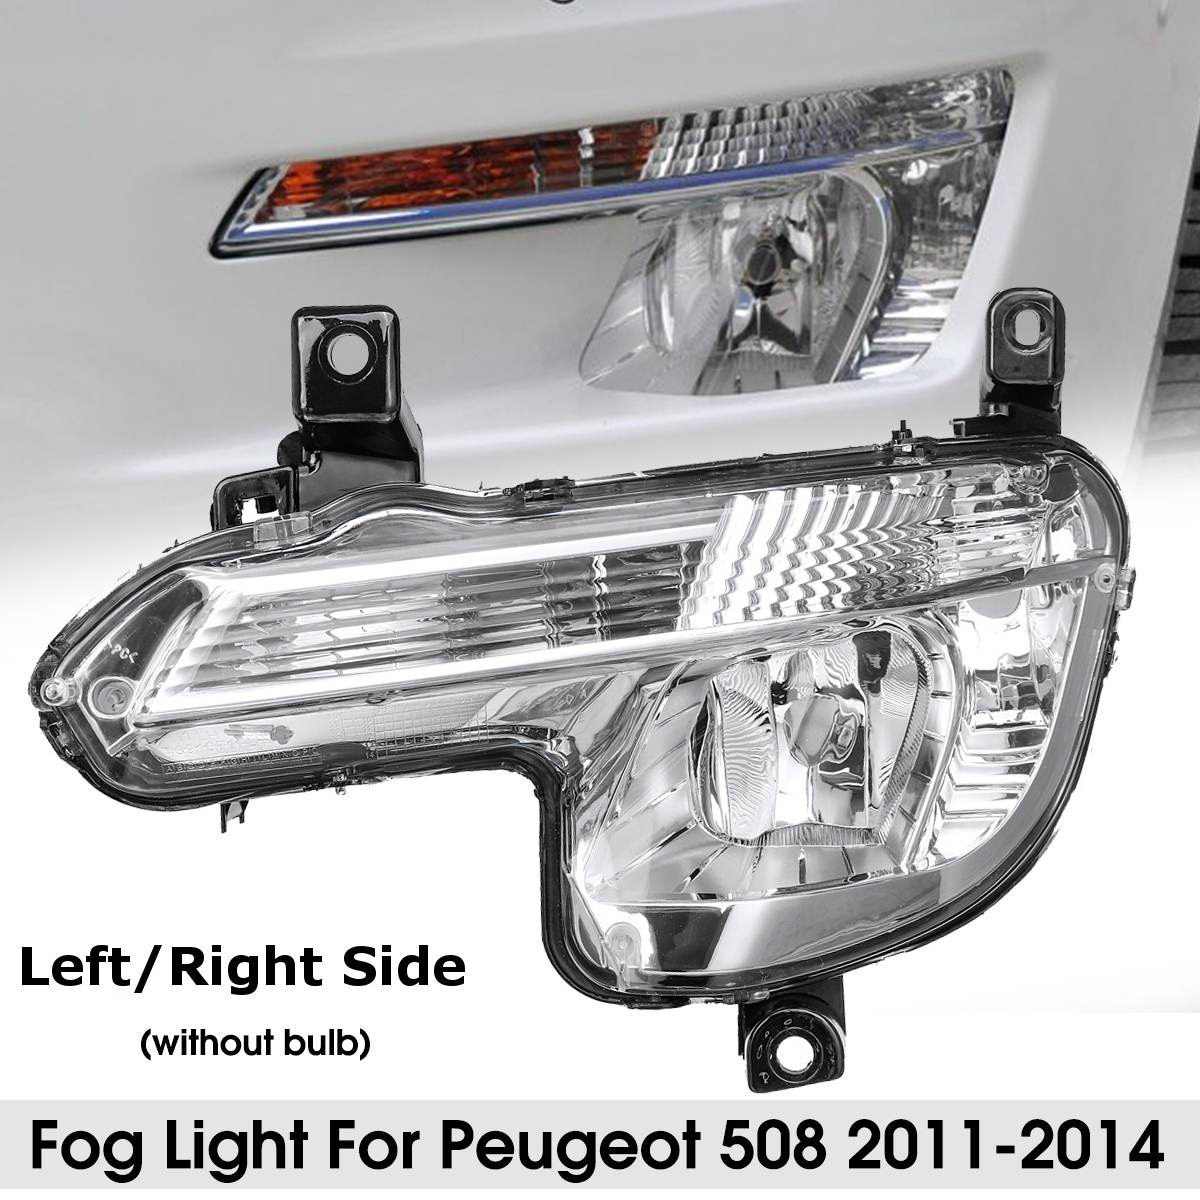 Left Right Clear Car Front Fog Light With Indicator 6206W2 9670476180 Without Bulb For Peugeot 508 2011 2012 2013 2014